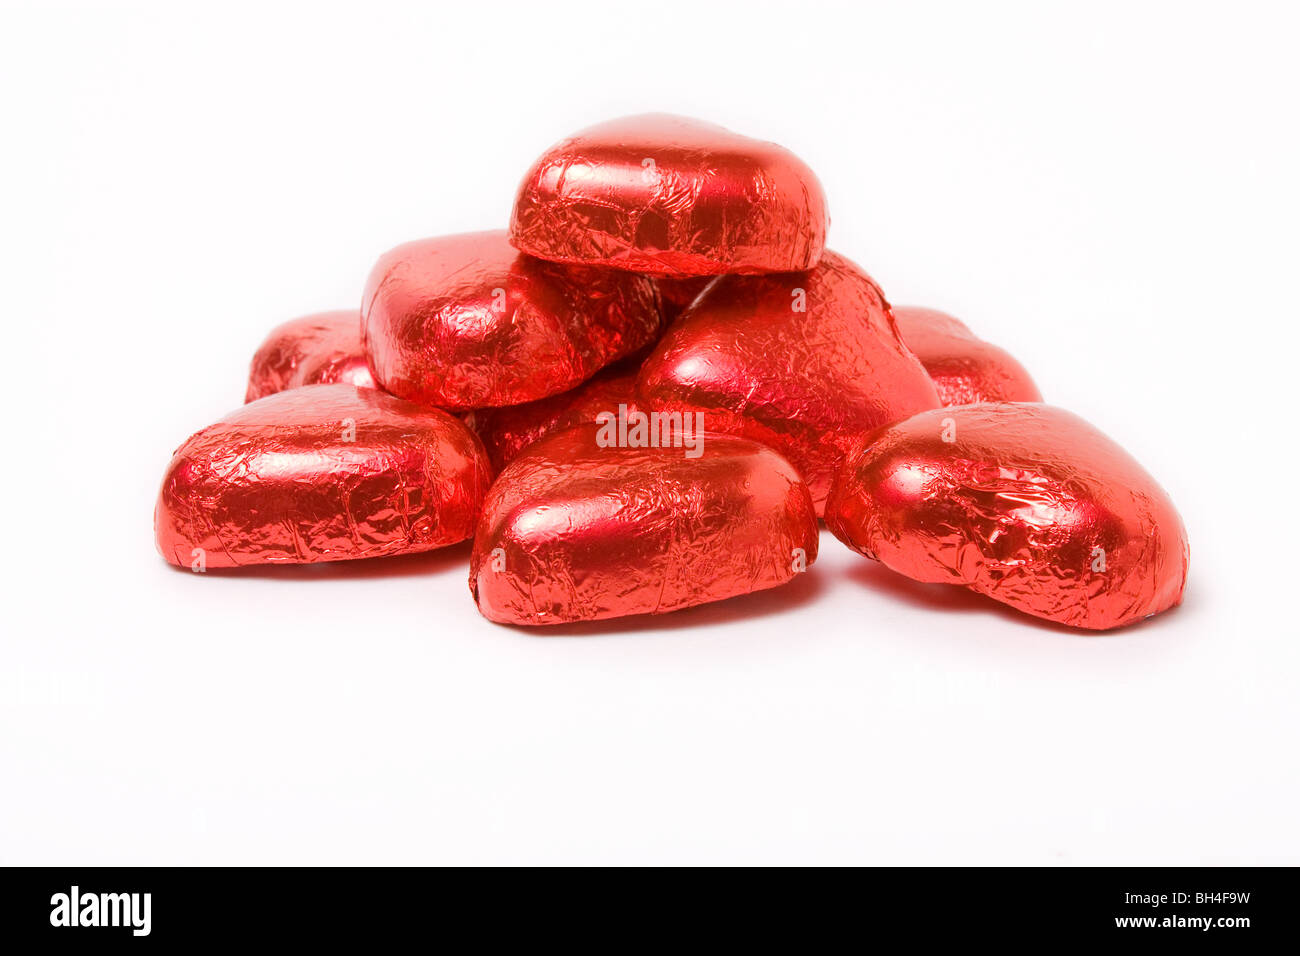 Red foil wrapped chocolate hearts for valentine's day - Stock Image